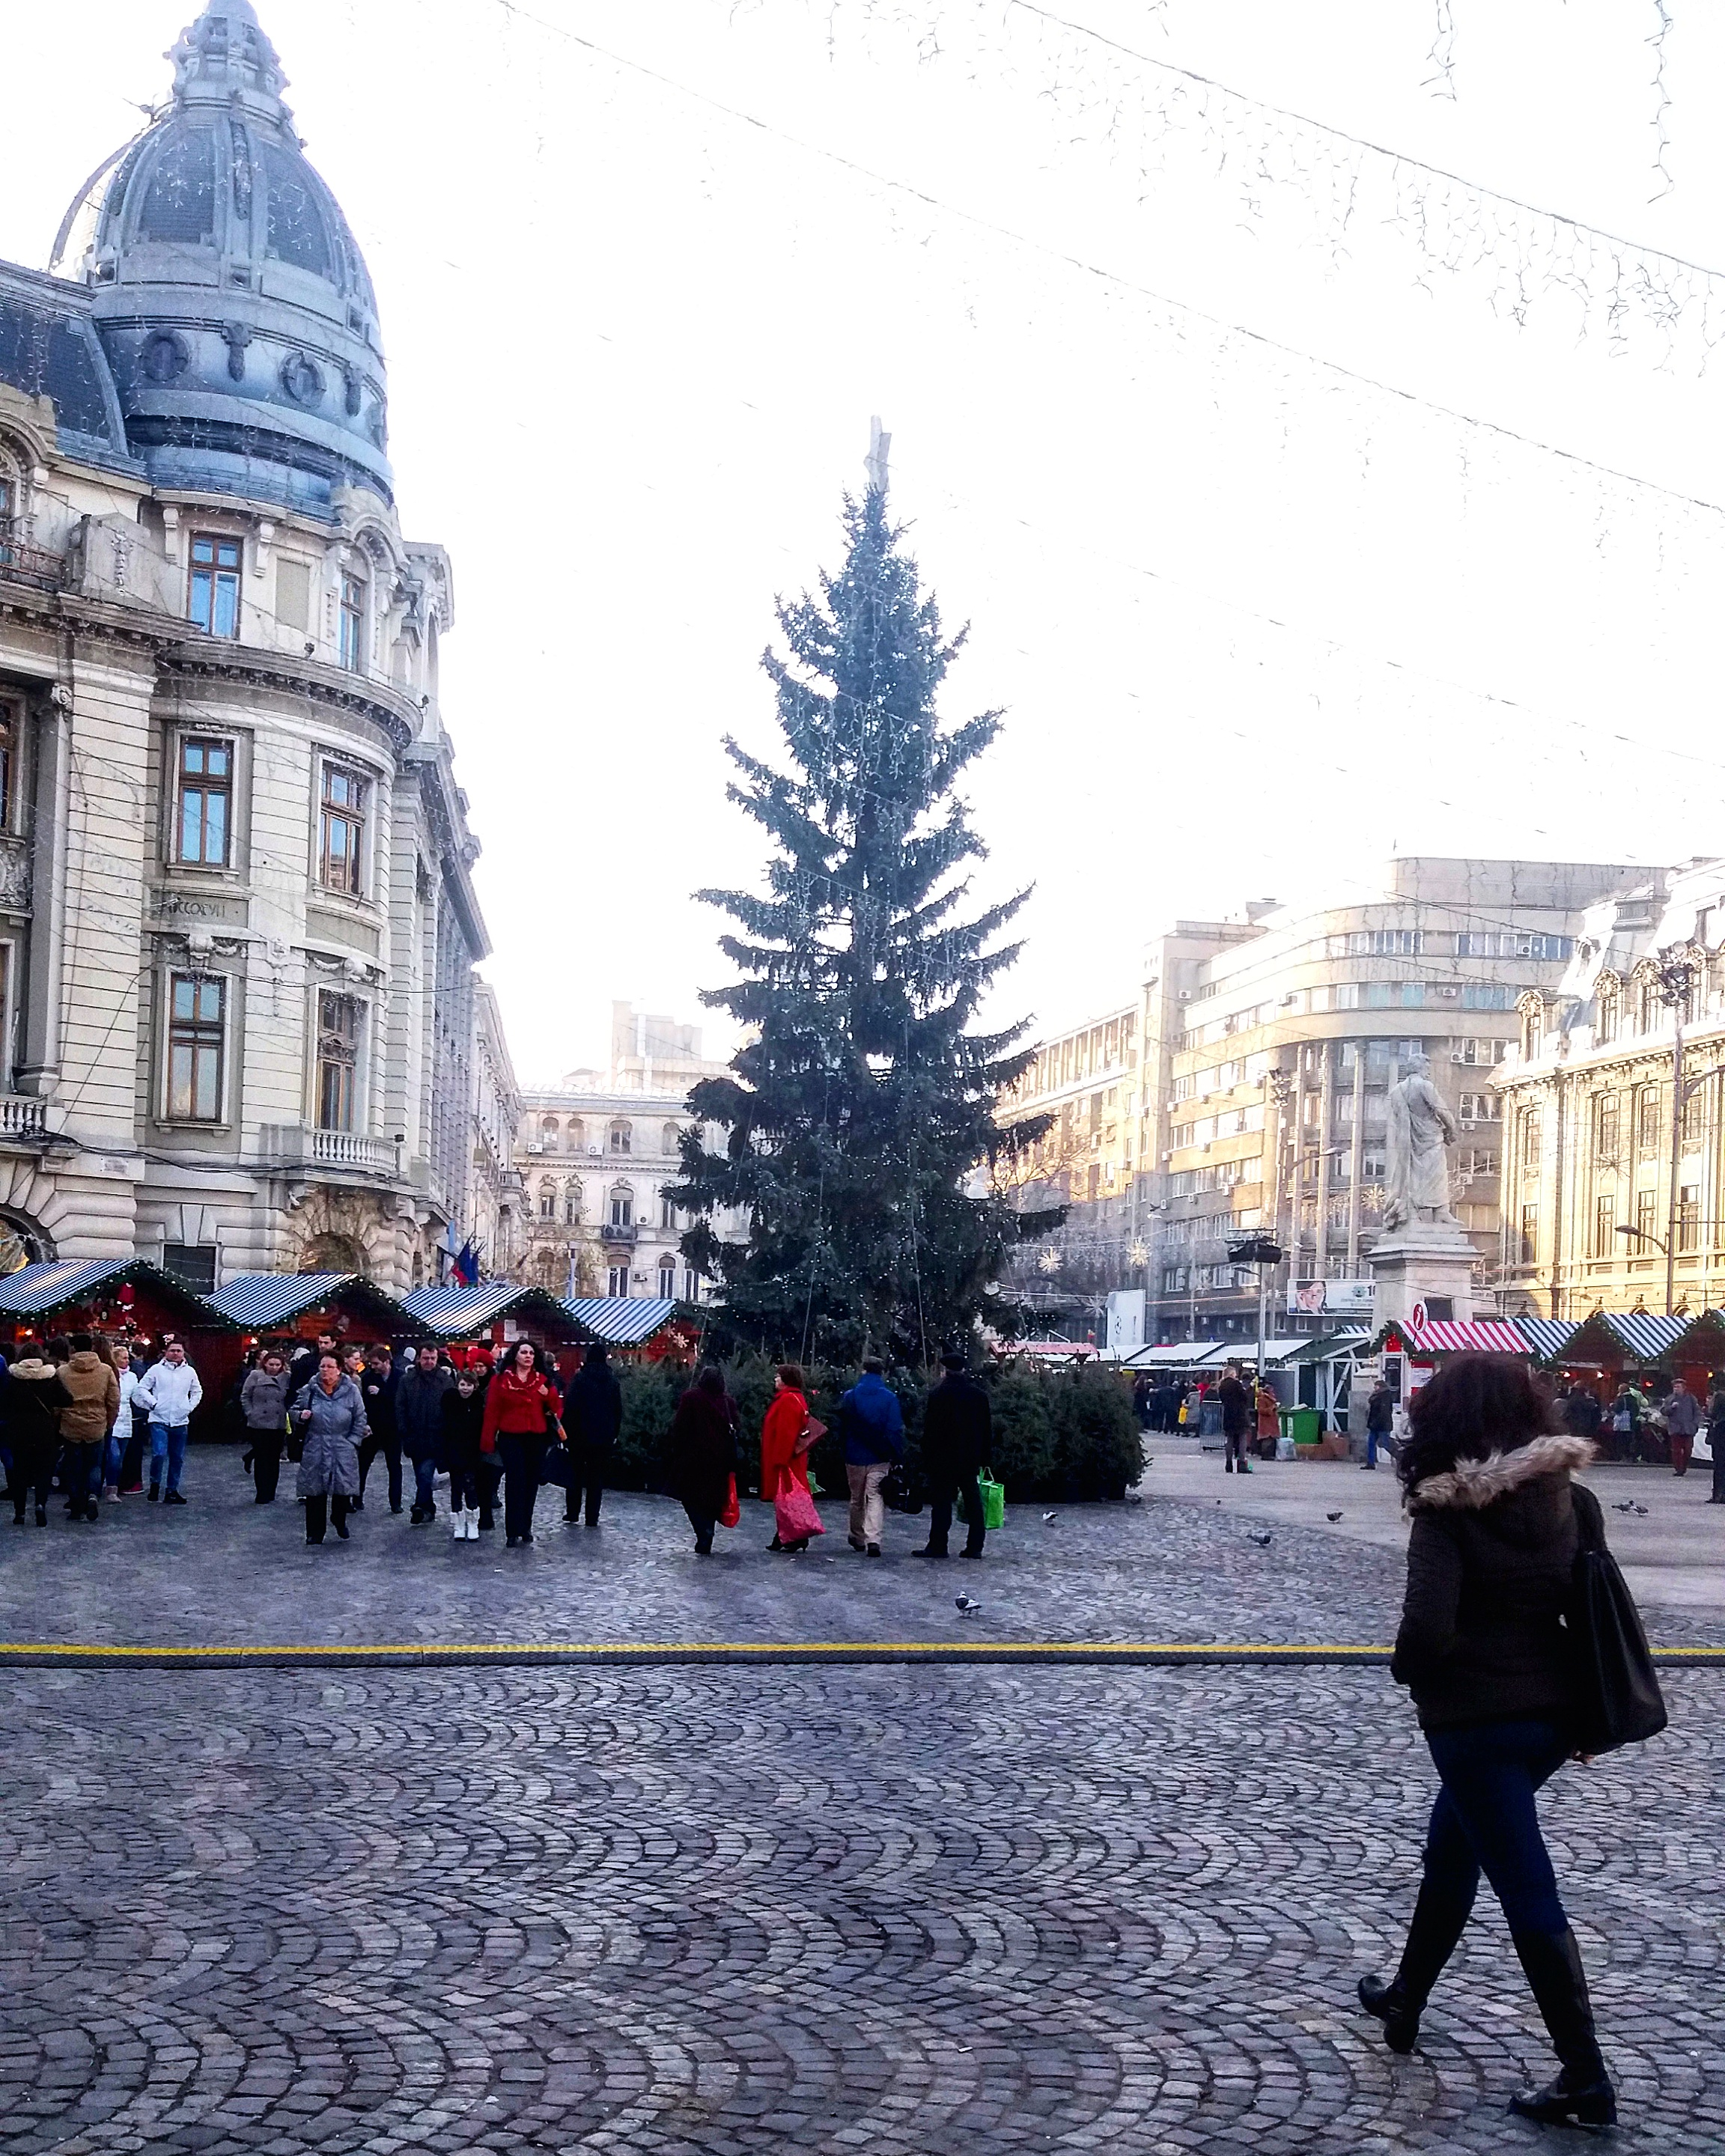 Bucharest Christmas Market - Christmas tree